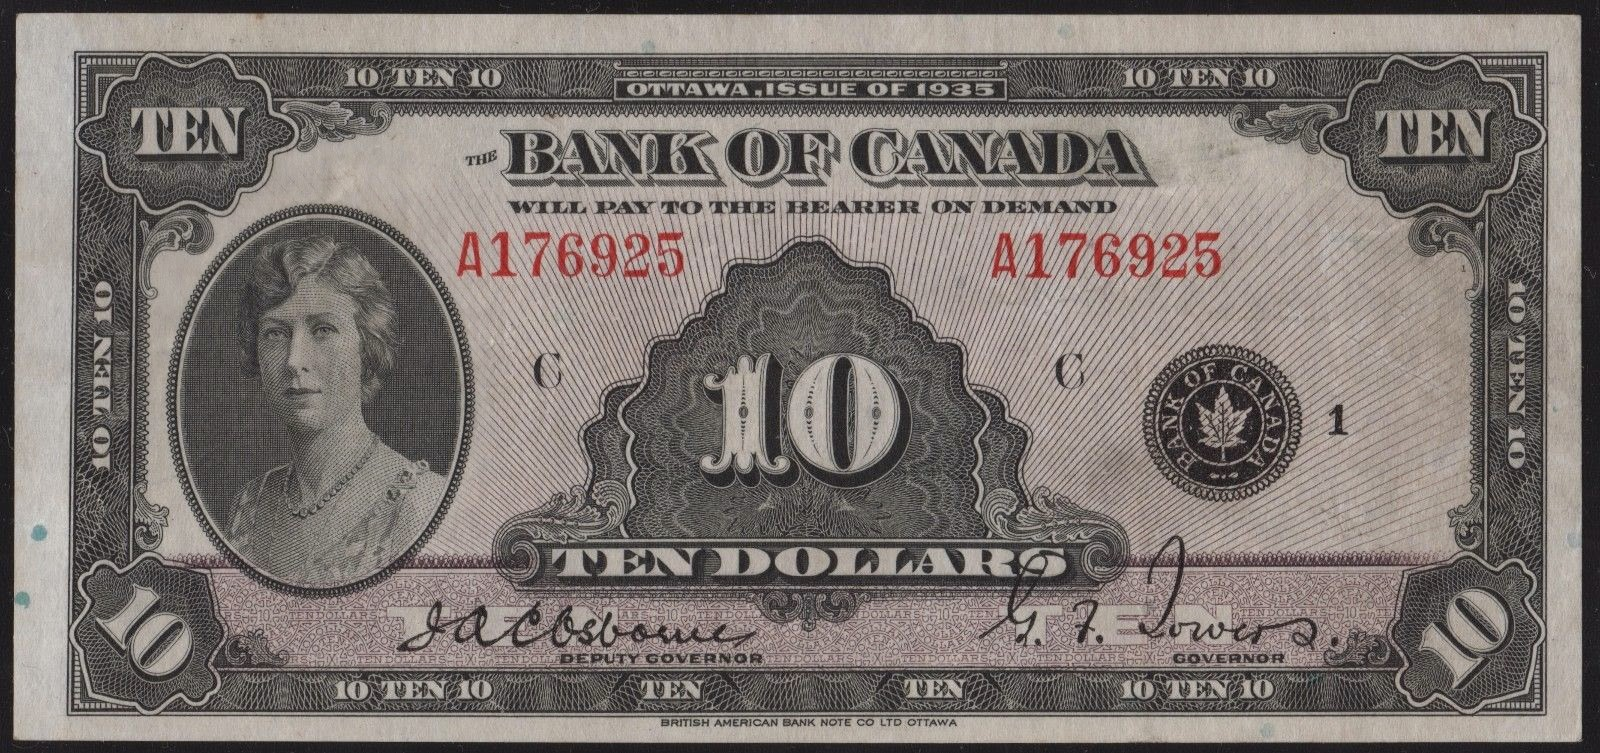 Canada banknotes 10 Dollar Note 1935 Princess Mary